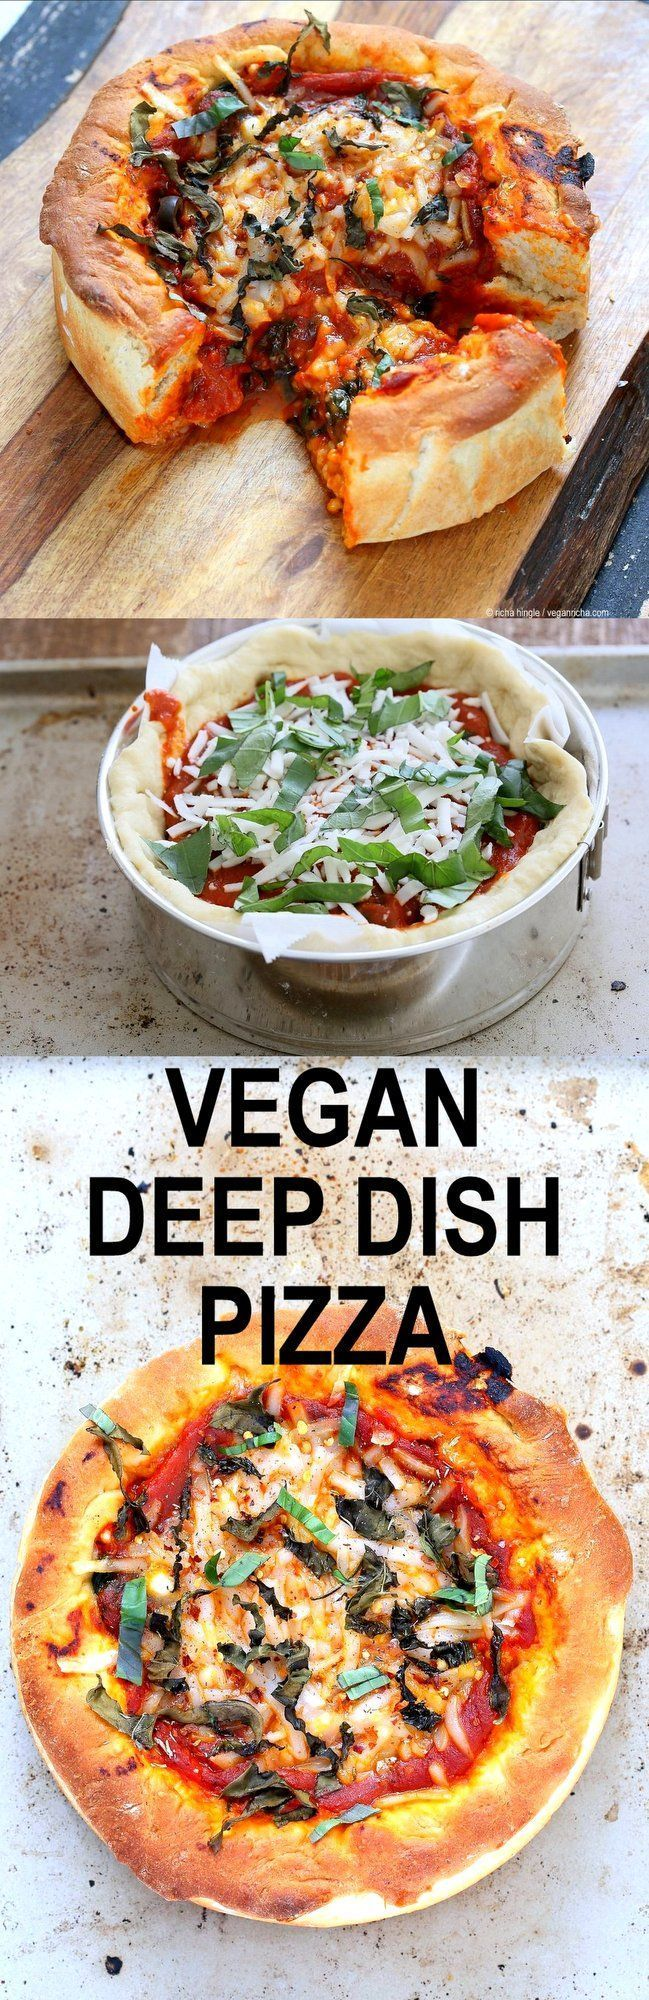 Vegan Deep Dish Pizza Recipe. Easy Deep Dish Pizza with from scratch crust, red pepper, spinach, vegan mozzarella and basil. Vegan Pizza Recipe with homemade 20 Minute Deep Dish Pizza Crust, almost no knead   http://VeganRicha.com